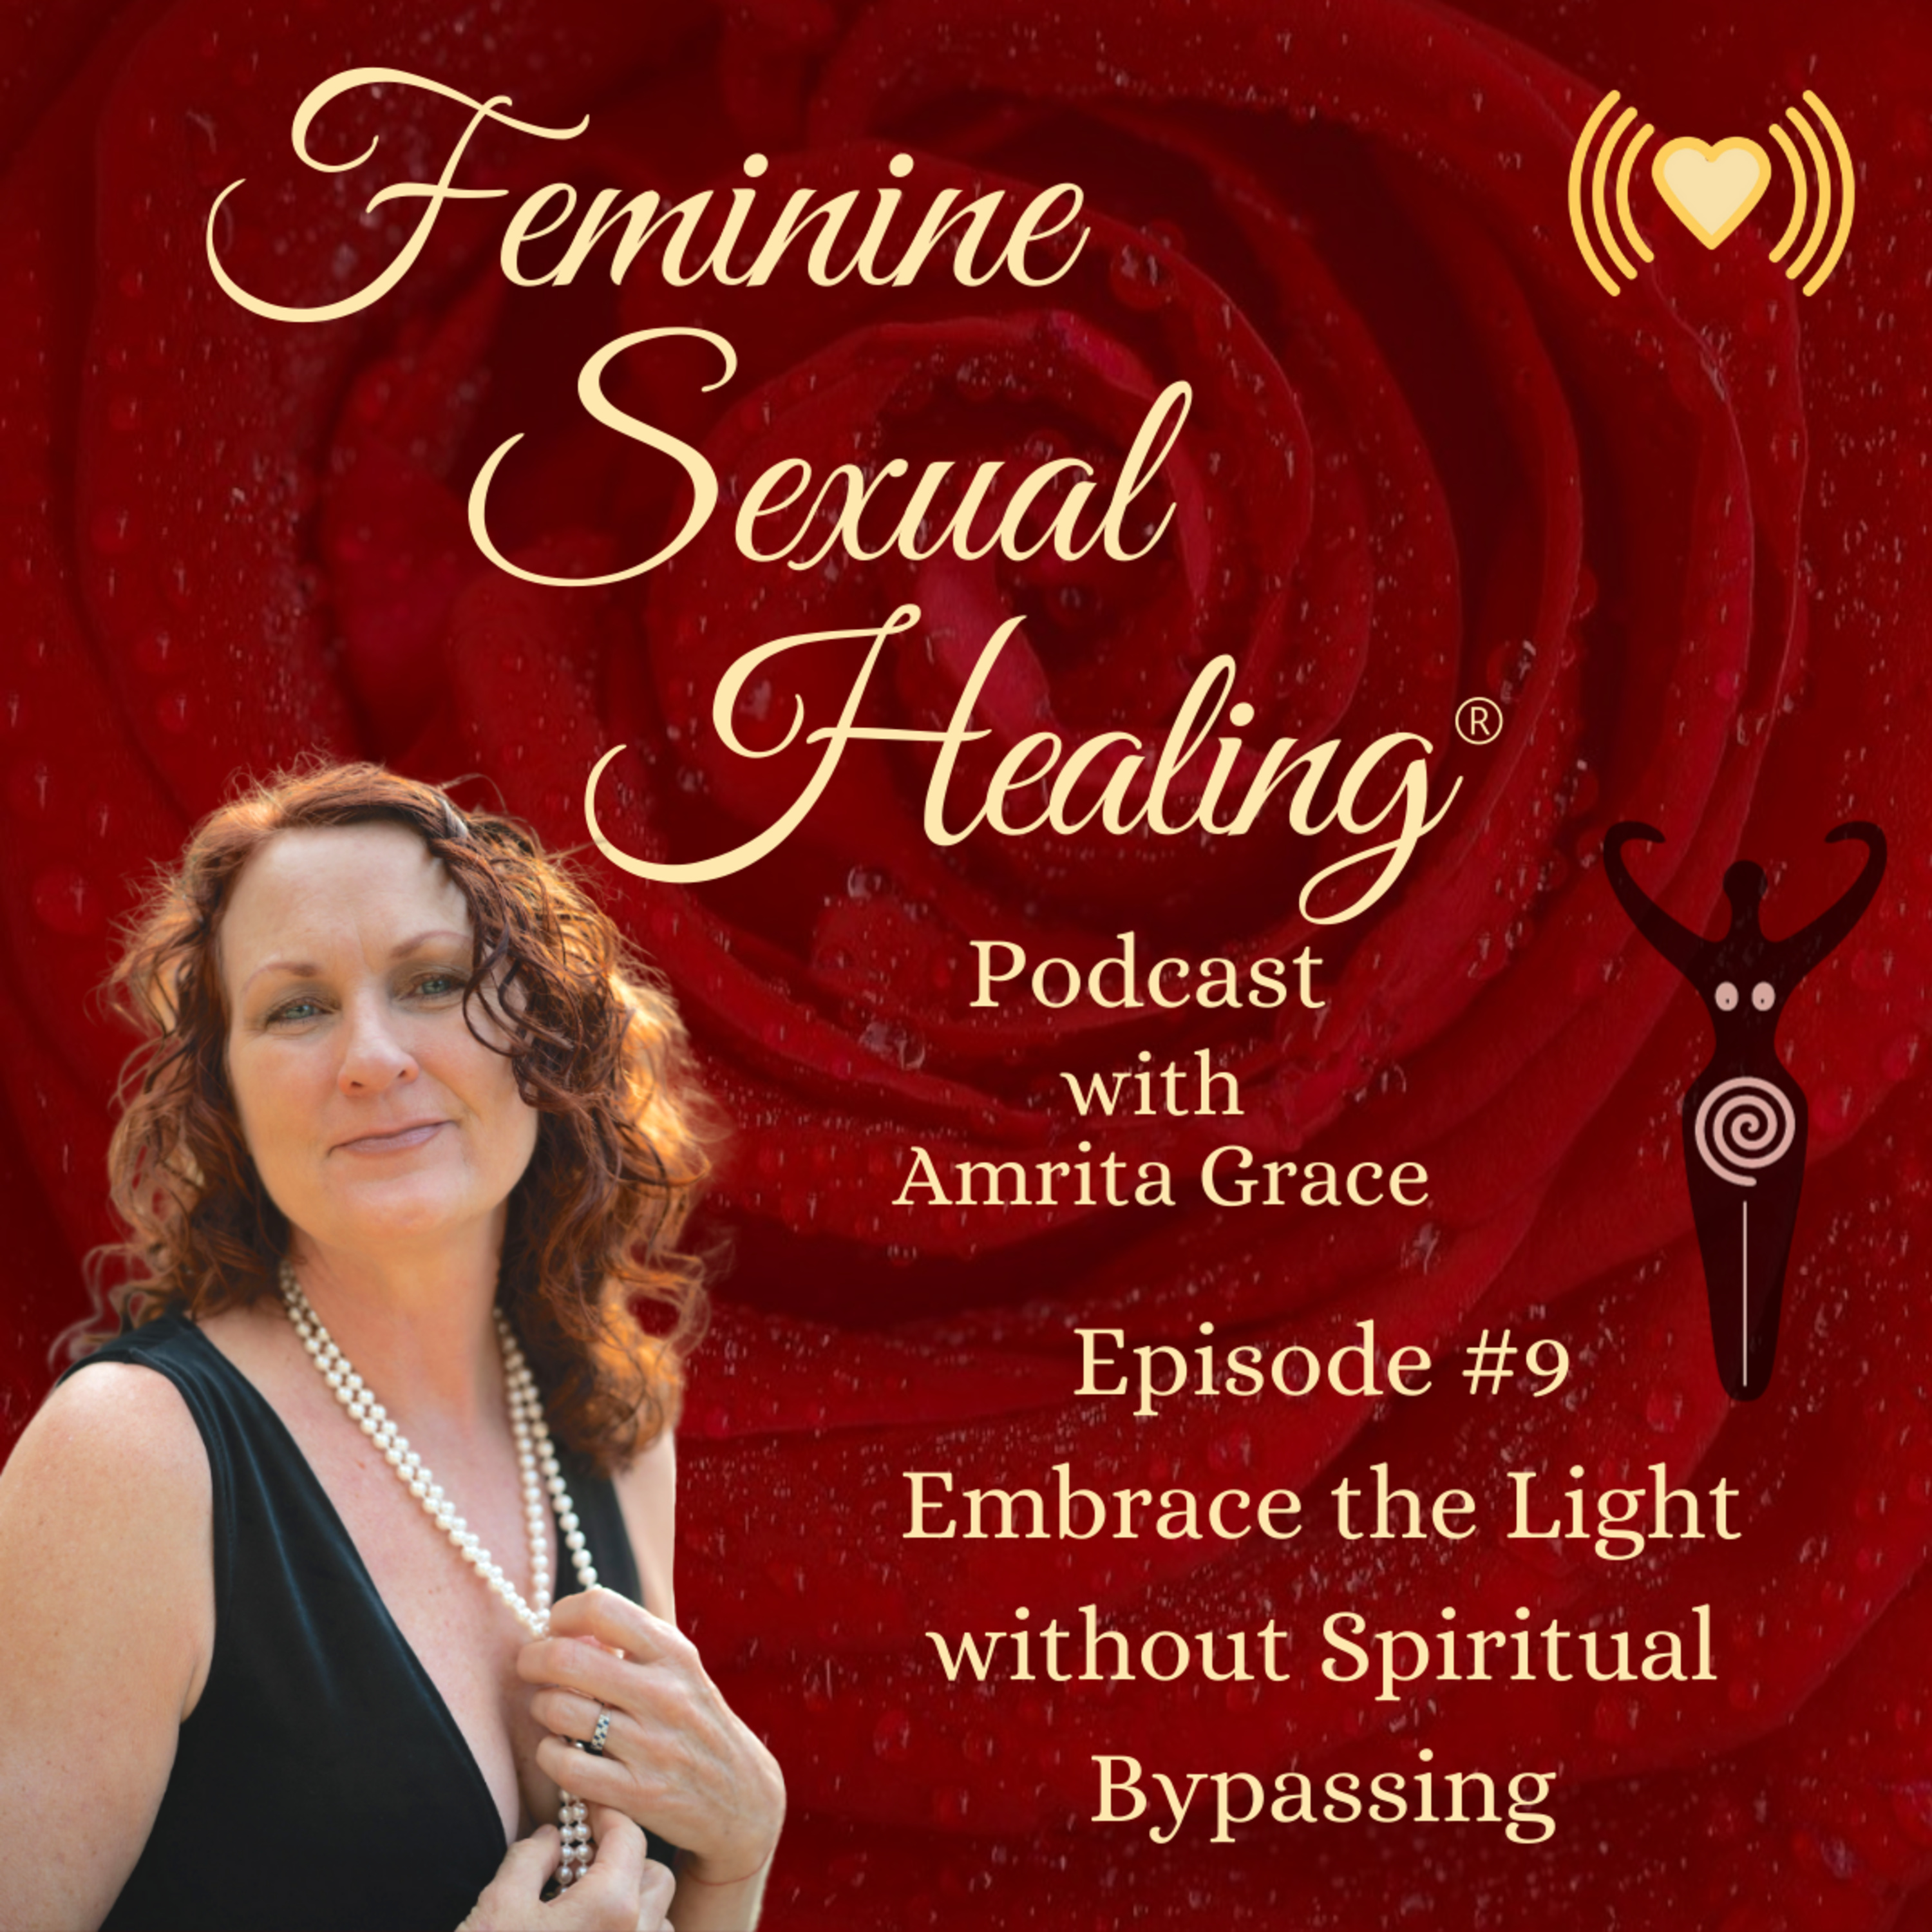 Episode #9 How to Embrace the Light without Spiritual Bypassing